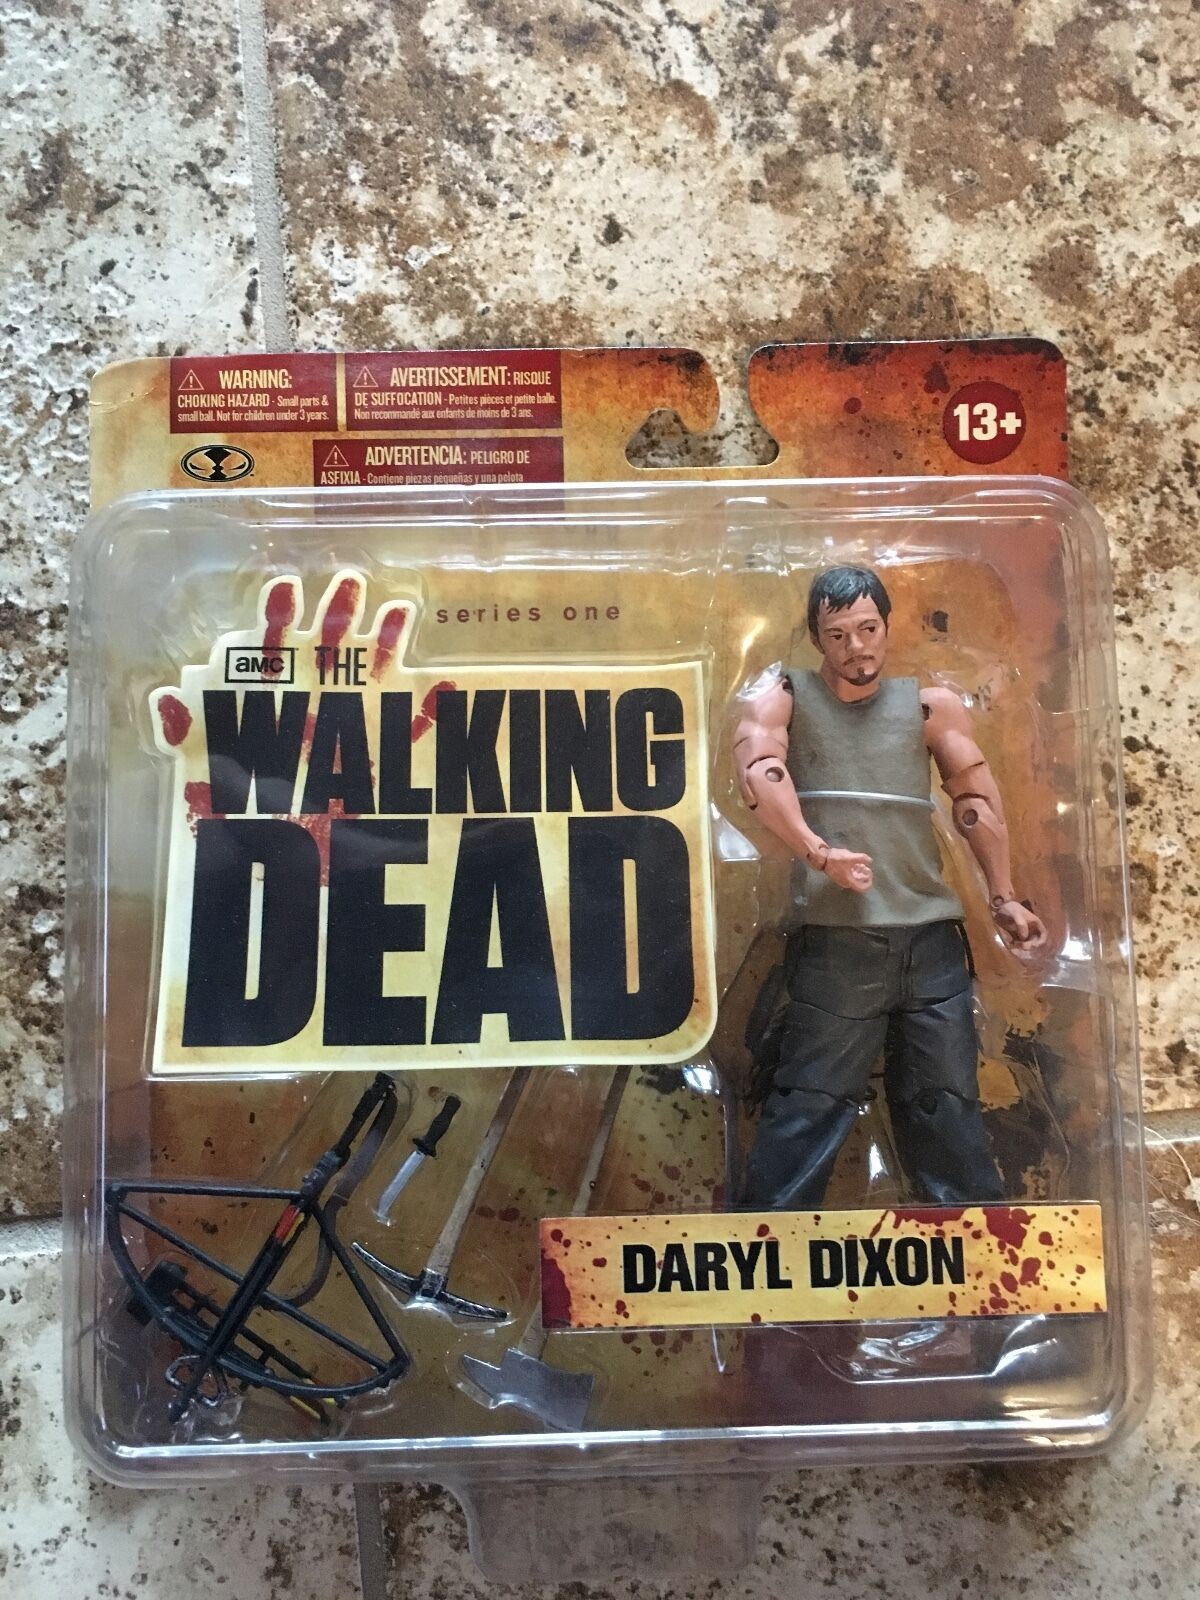 Mcfarlane original daryl walking dead action figure From 2011